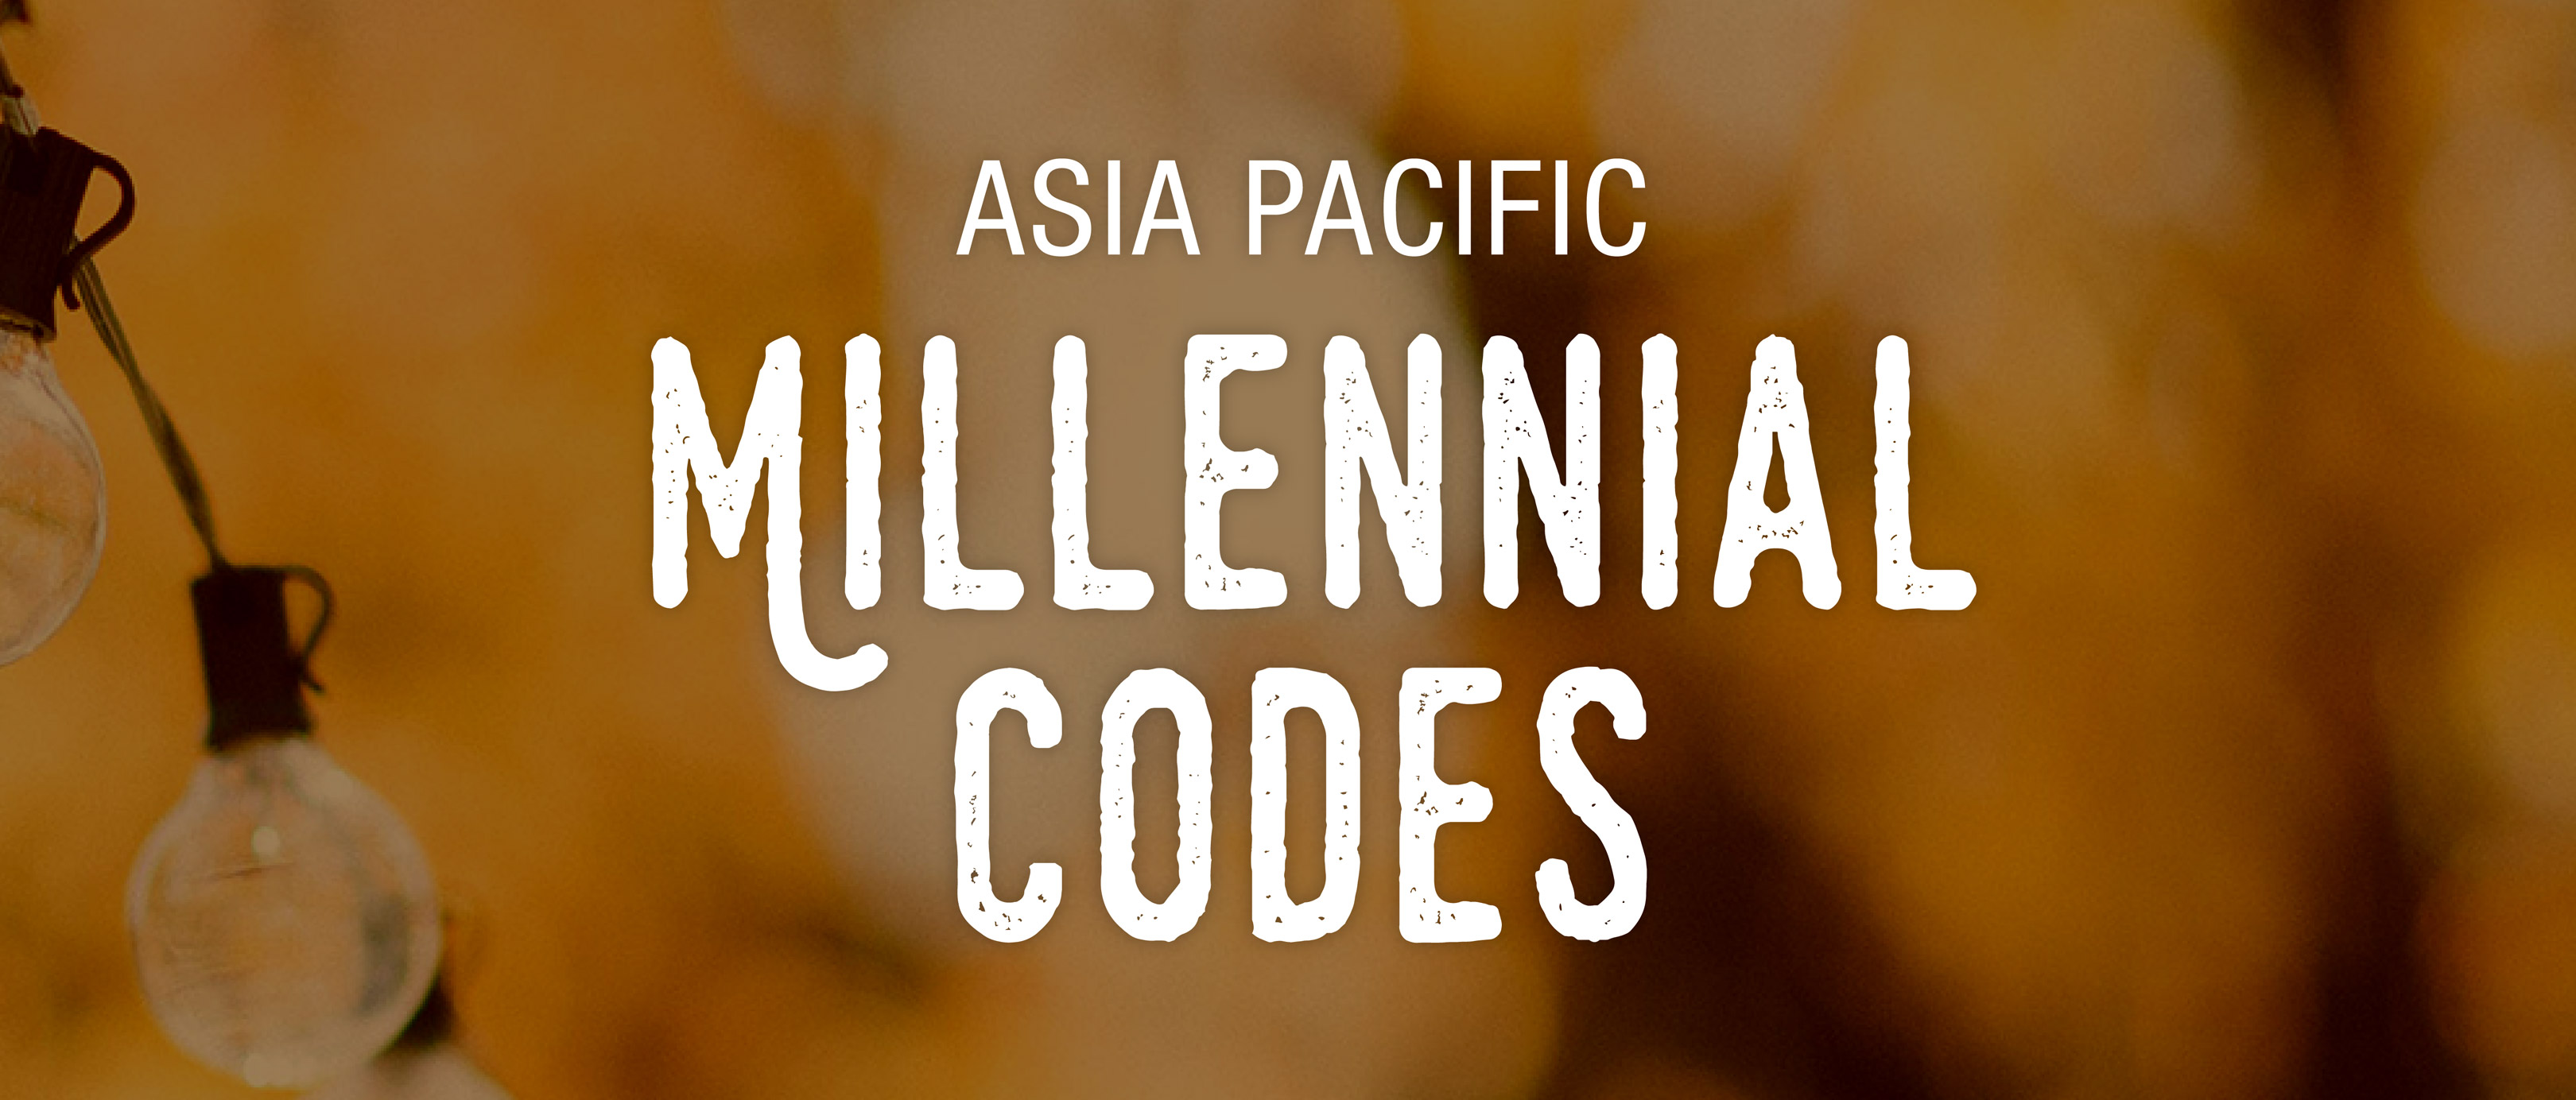 Asia Pacific Millennial Codes